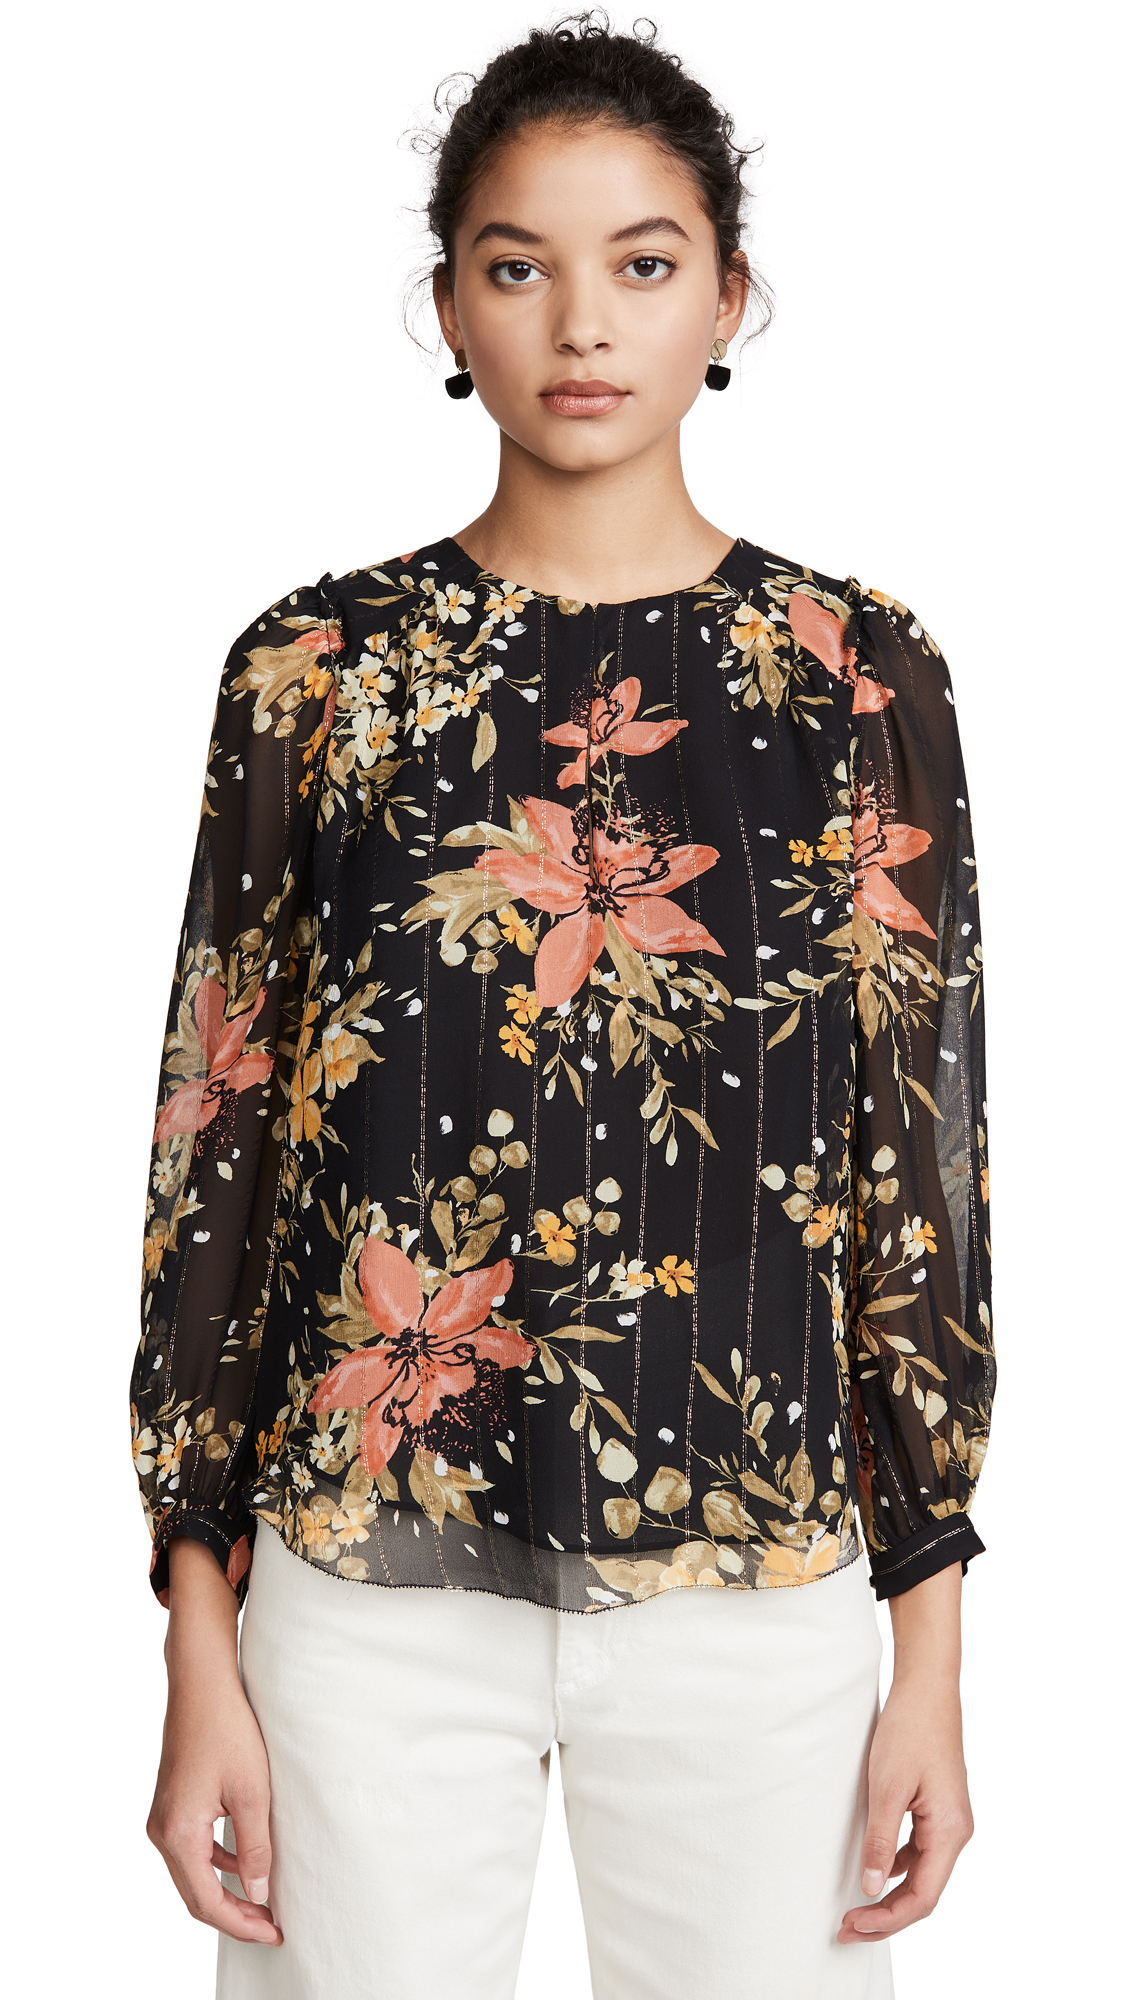 Joie Albany B Top - 50% Off Sale